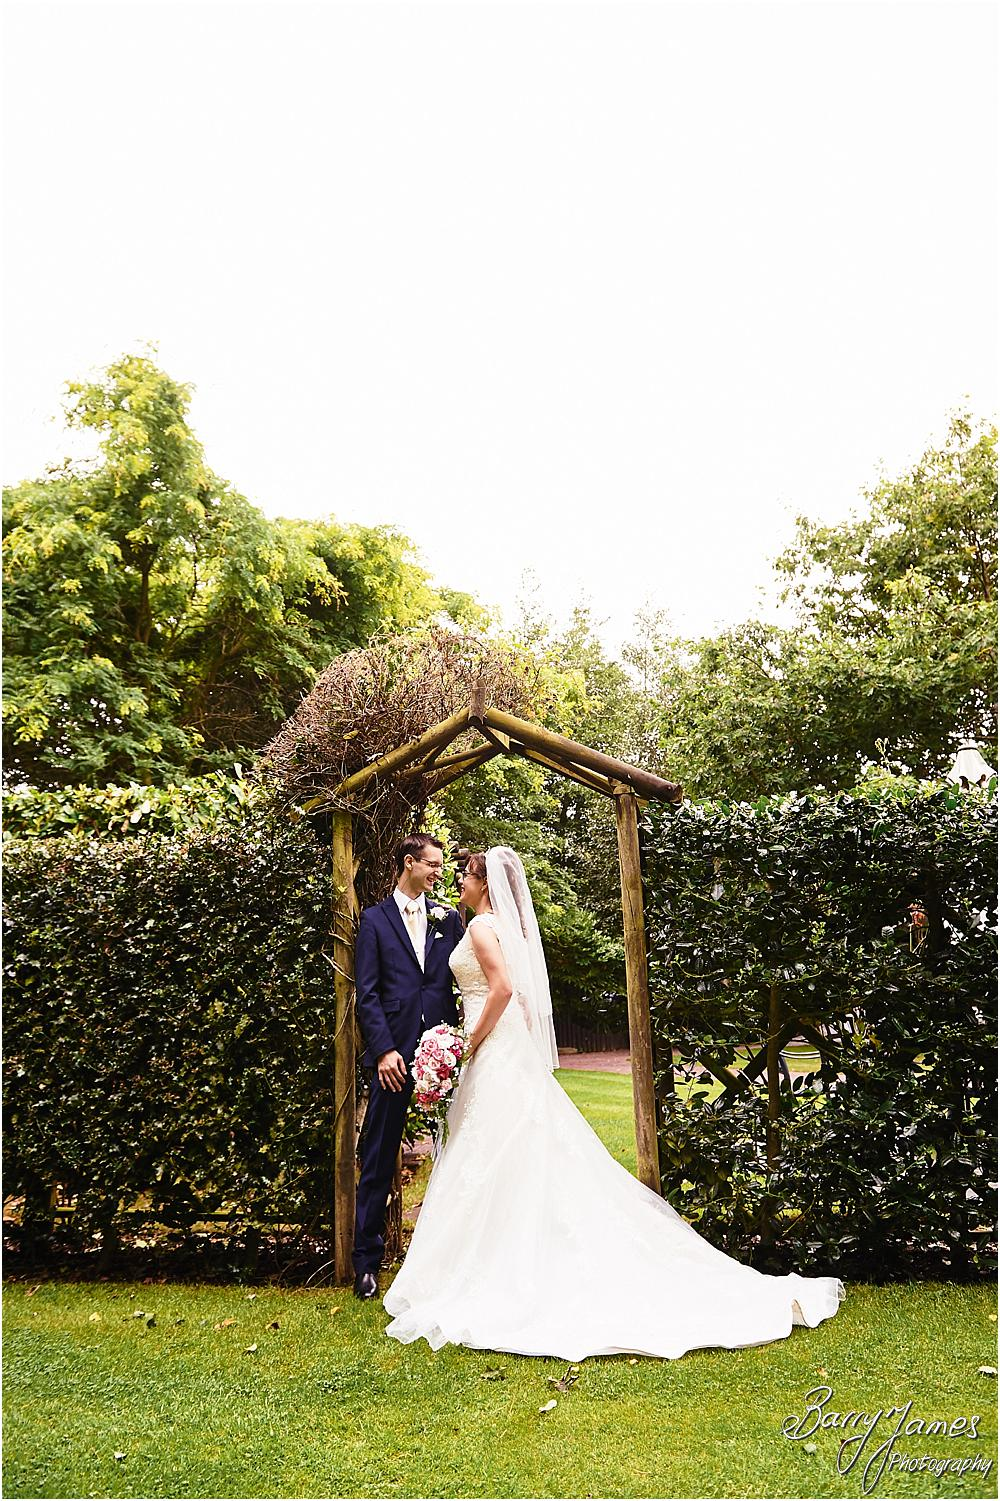 Elegant relaxed portraits of the bride and groom around the grounds of The Fairlawns in Walsall by Walsall Wedding Photographer Barry James